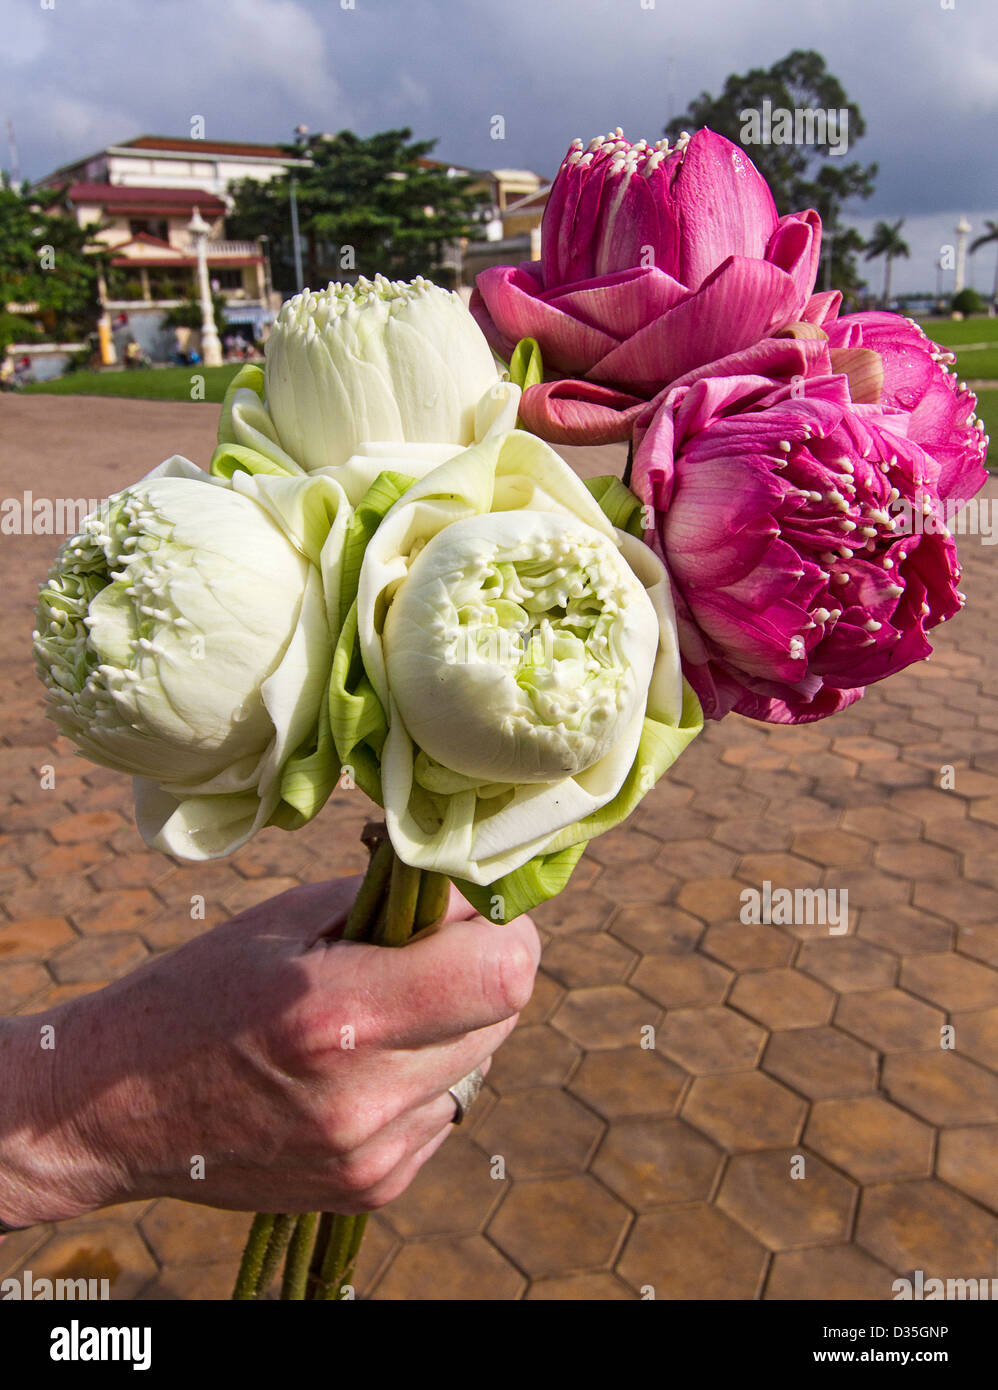 Lotus flowers cambodia these flowers are a symbol of buddhism lotus flowers cambodia these flowers are a symbol of buddhism mightylinksfo